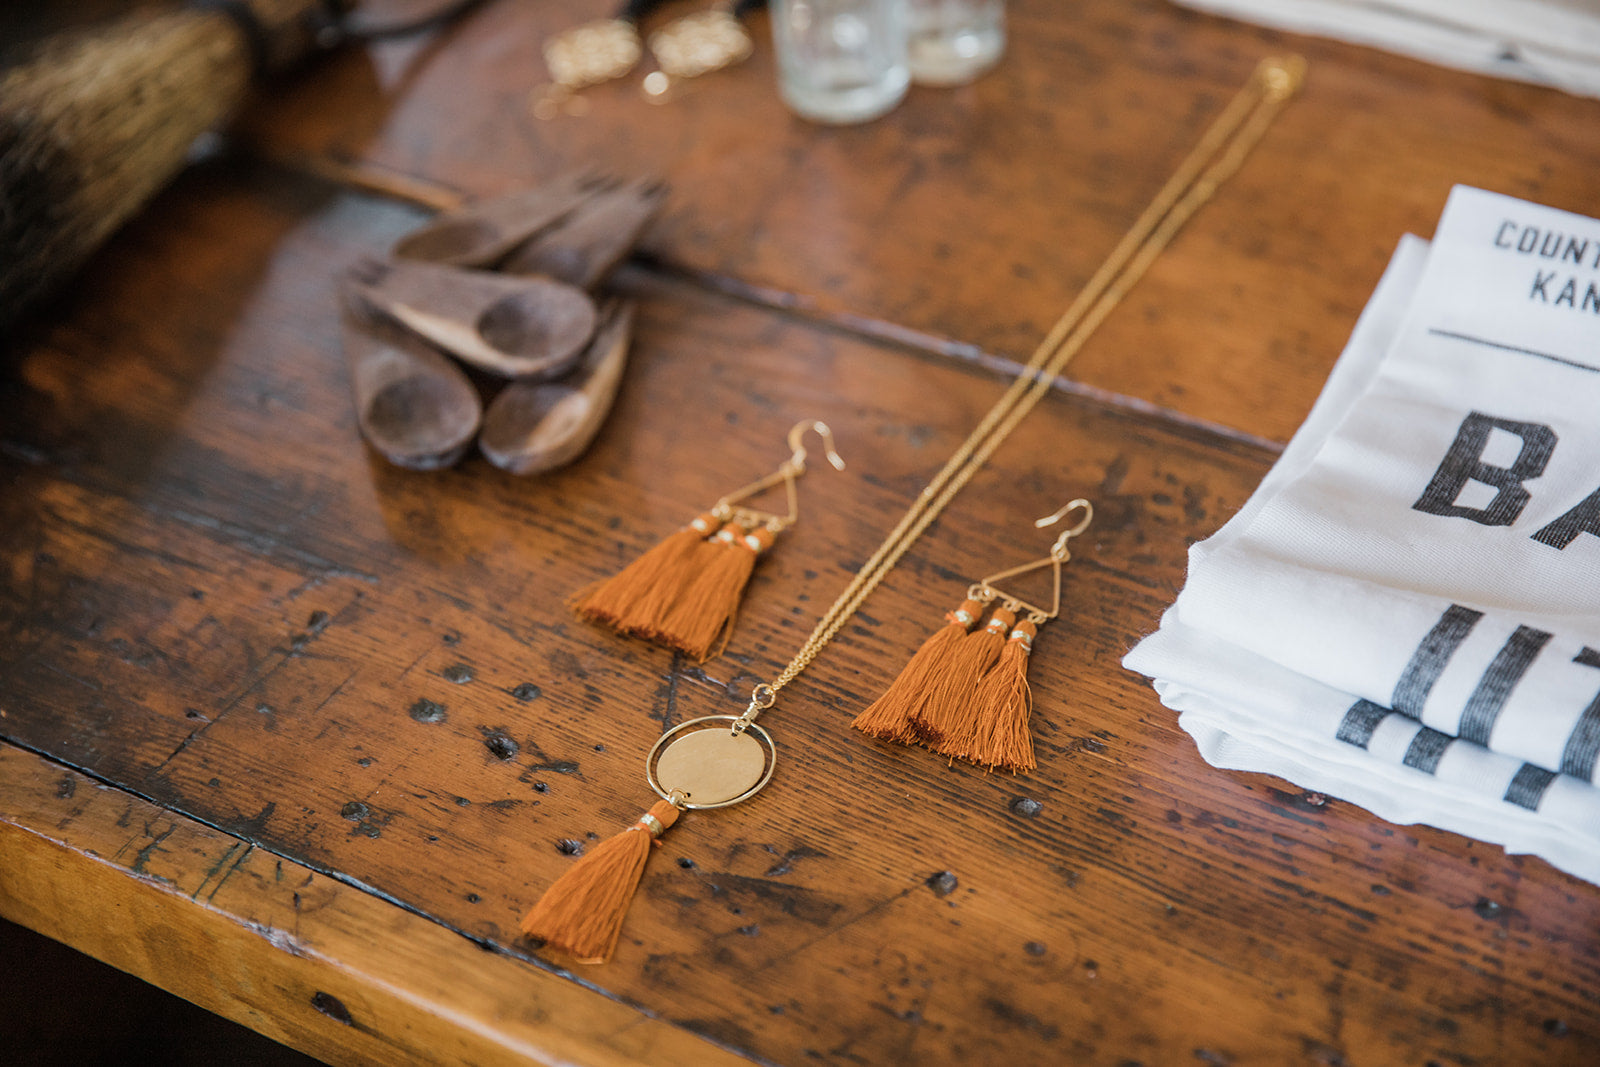 Natalie Claire jewelry on a wooden table.